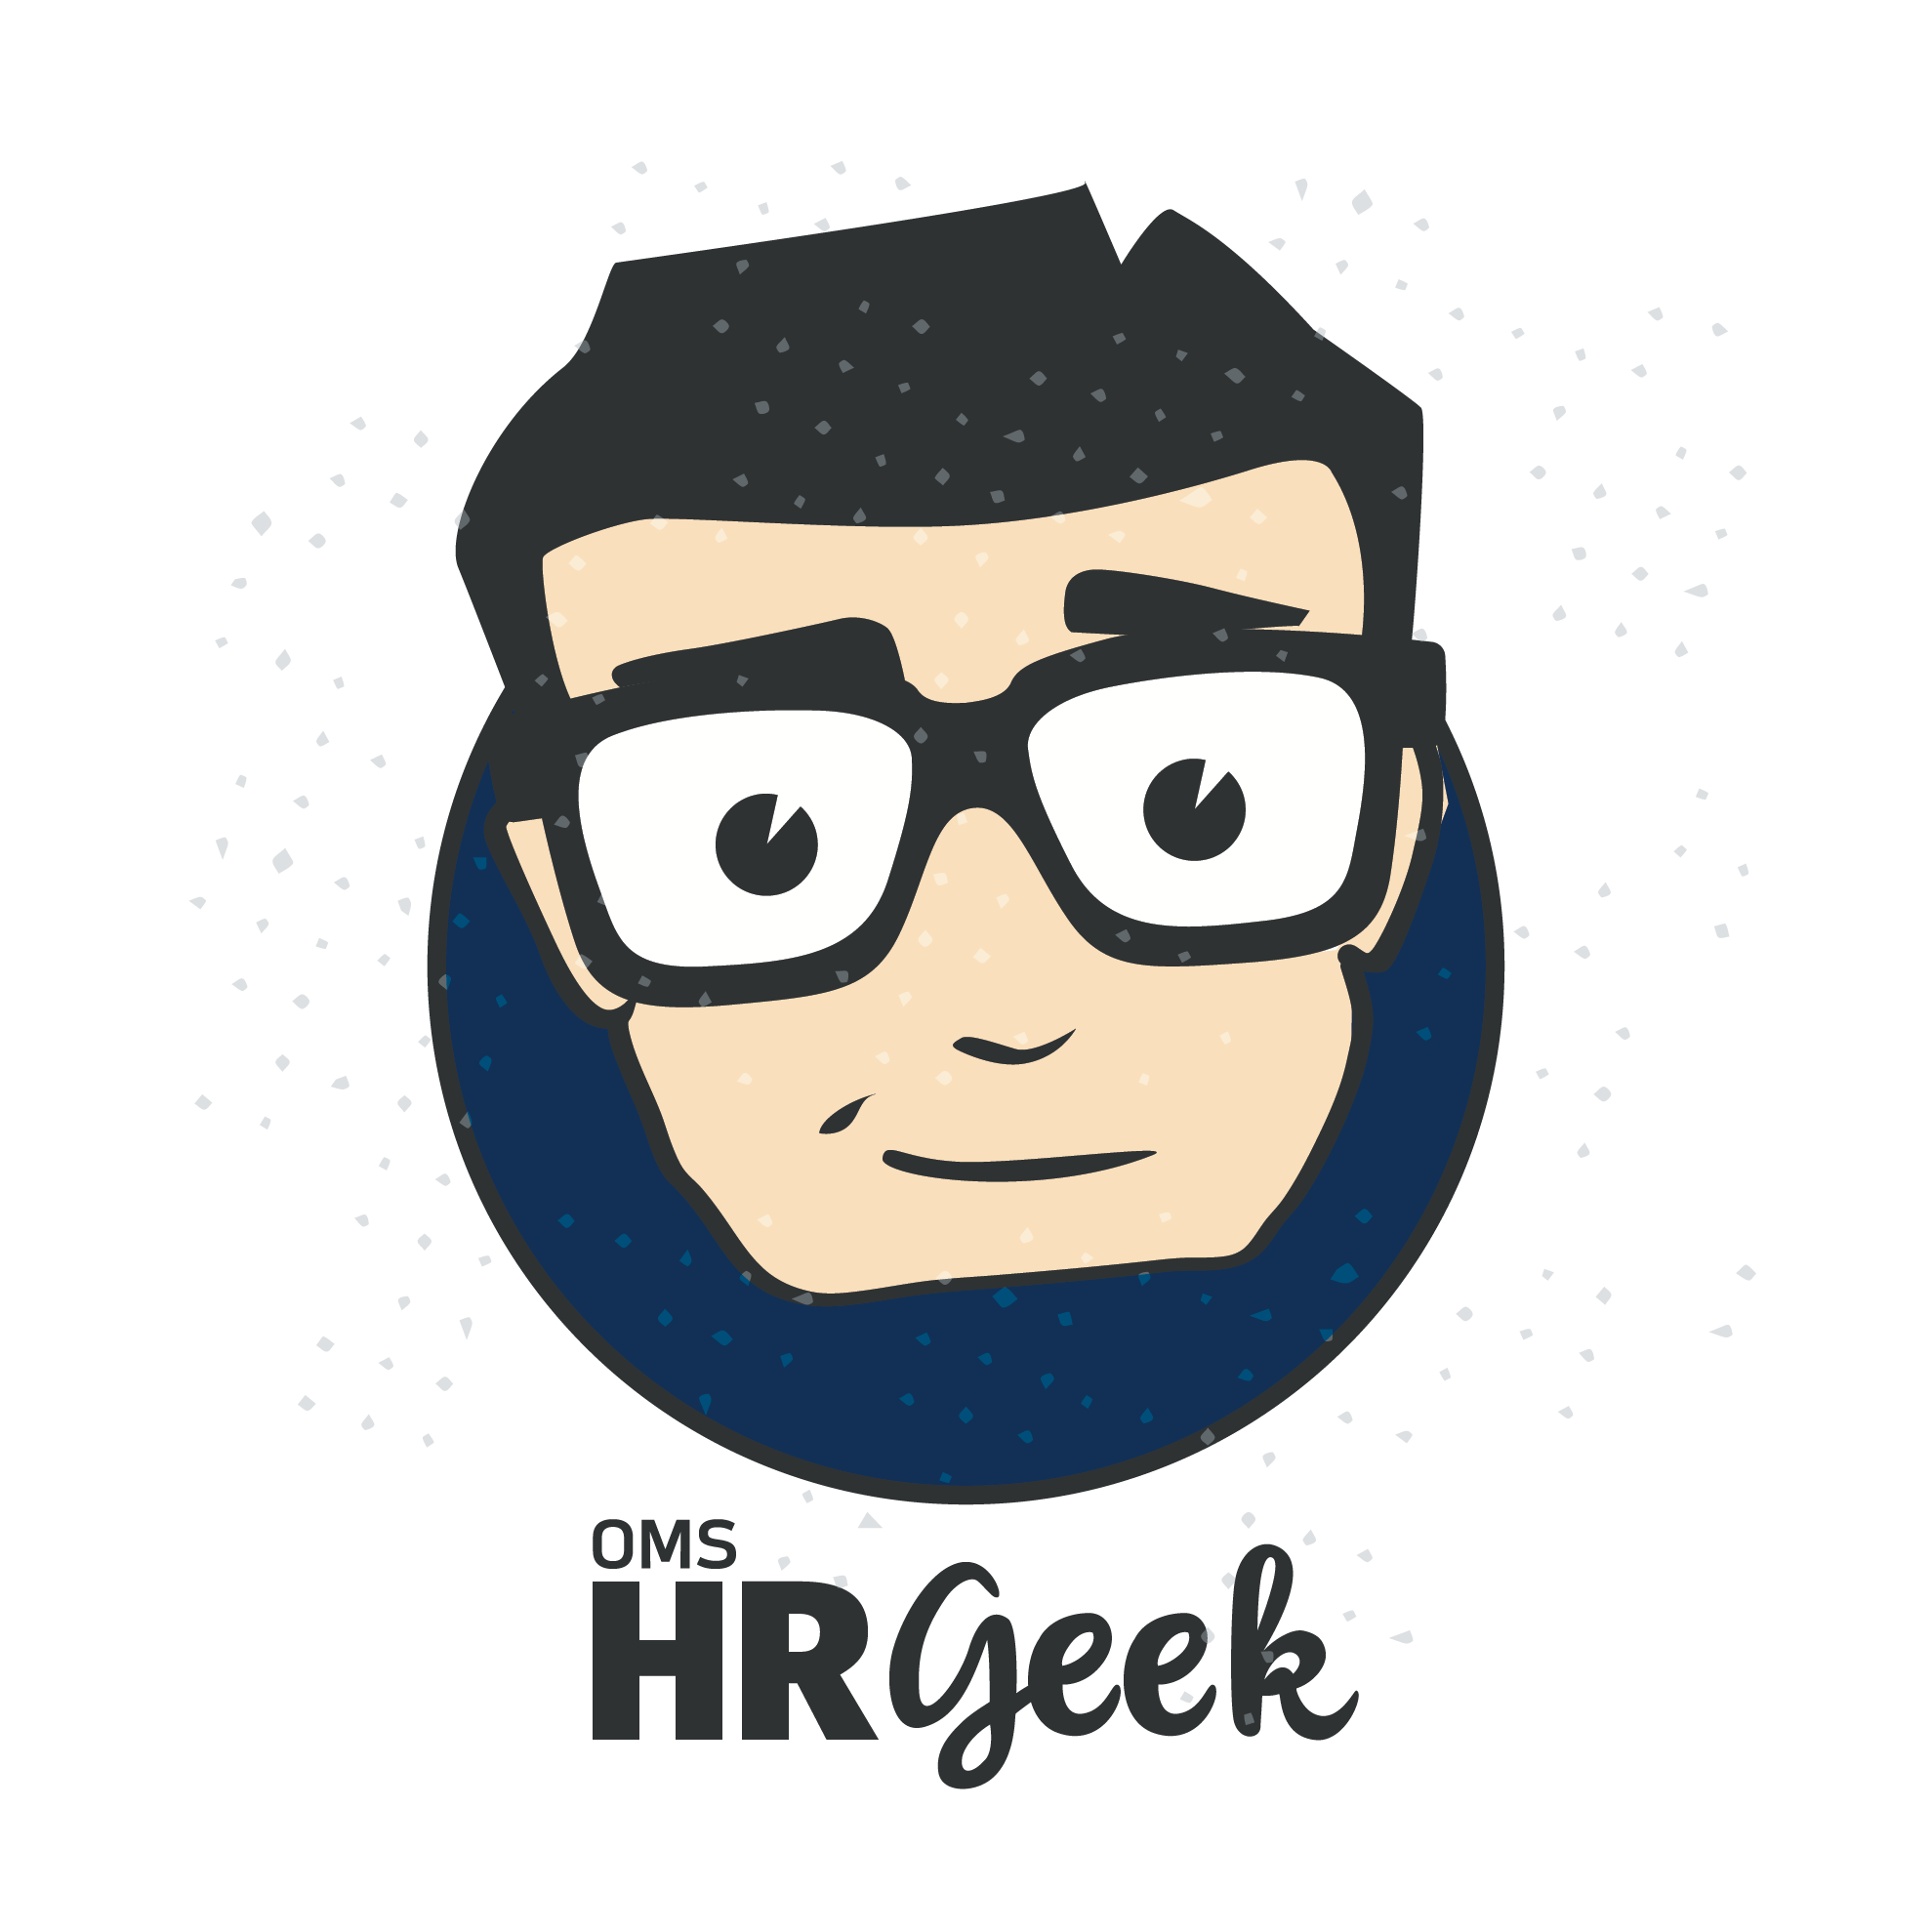 "We Get Geeked Out - Some people are known as Gear Heads, while others are Hackers—but we are HR Geeks. We know all things HR and we strive to be your virtual HR department.We put the ""human"" back in human resources. Get the help your looking for from a real person that knows you and knows HR. Now you can mange your people, maximize employee performance, streamline policies and systems, and stay in compliance with state and federal laws. We work as a team. Our model is built on relationships, period. HR can consist of many strategies and tools. We bring those tools to you, while you maintain absolute control."